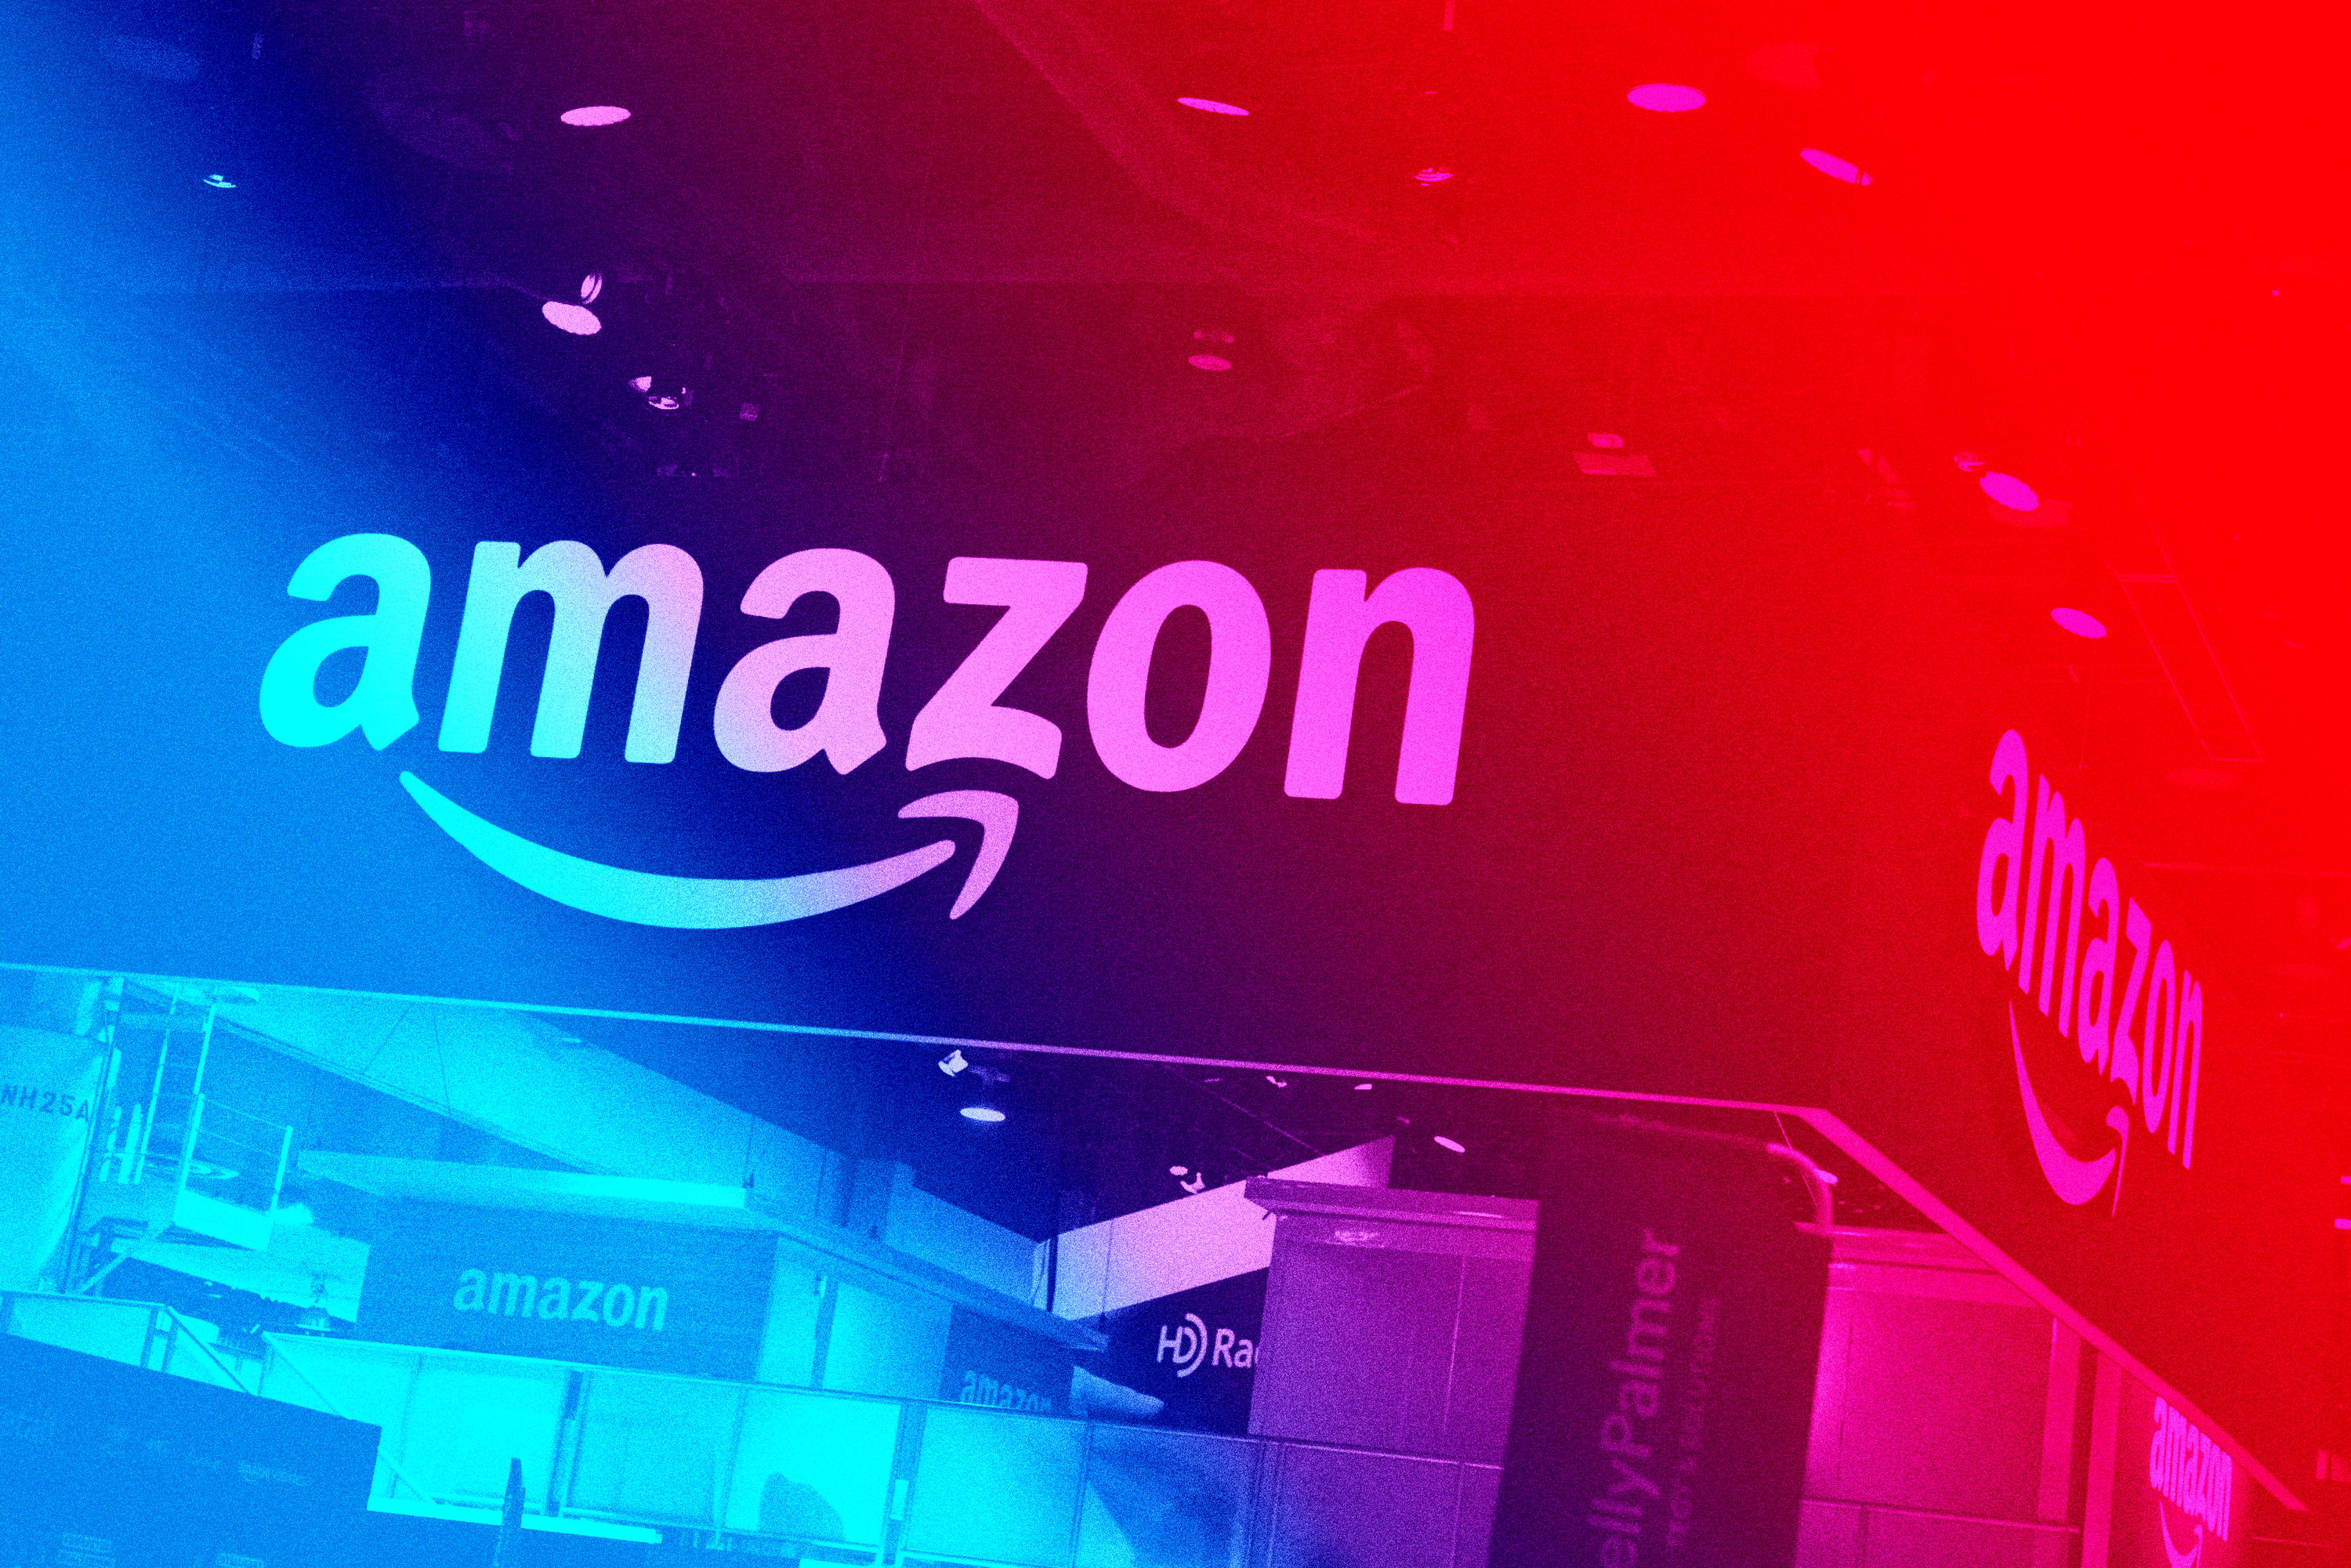 Amazon teams up with Lyft, Publicis accelerates Marcel rollout: Monday Wake-Up Call